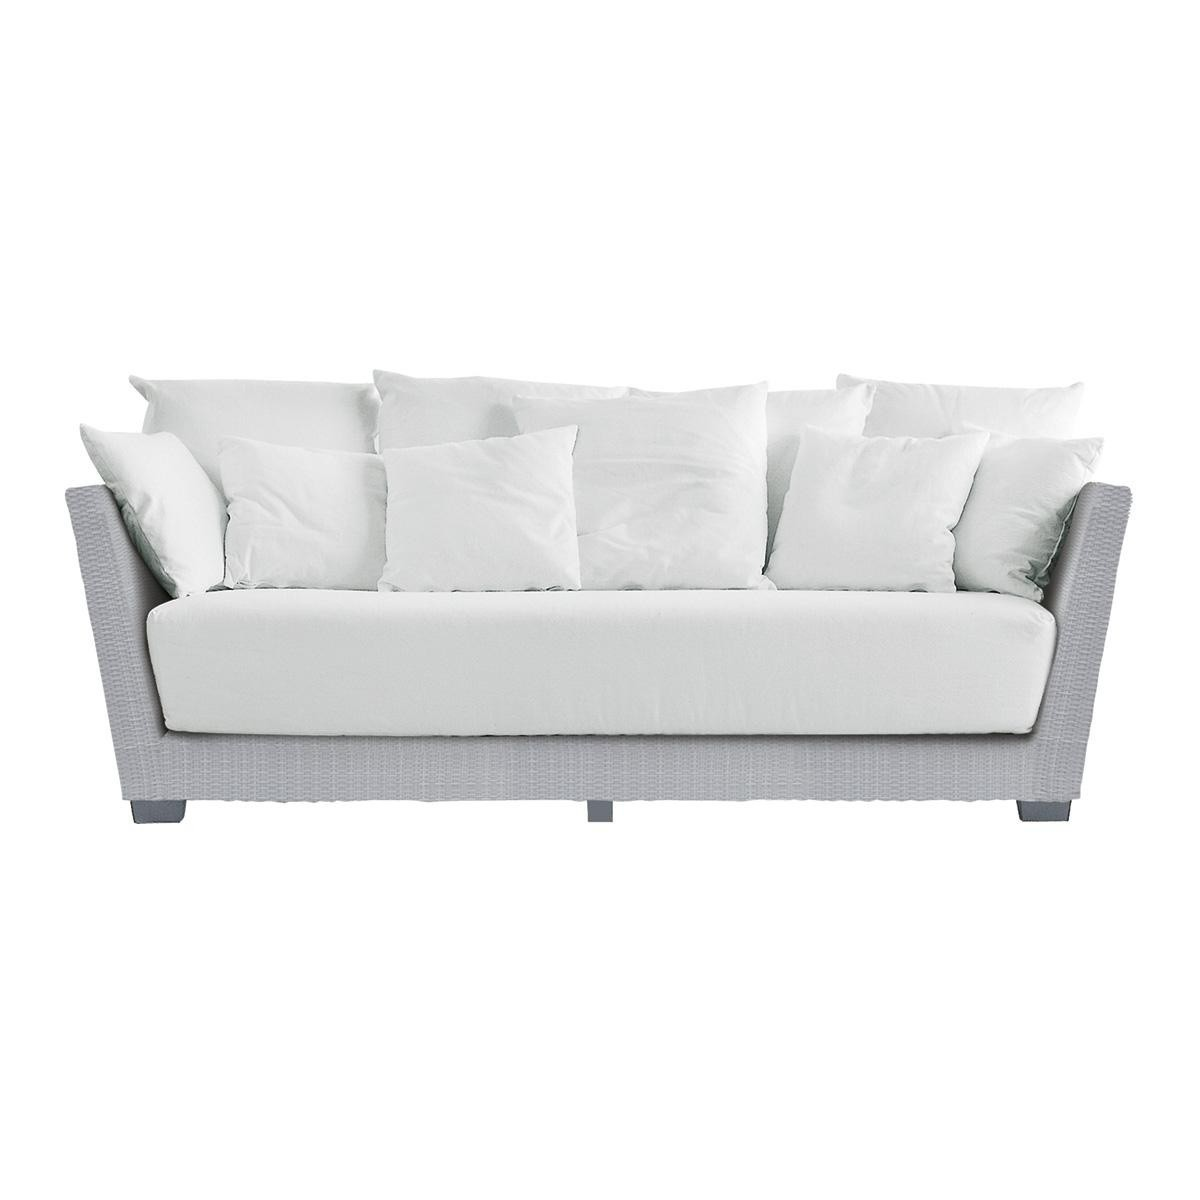 Full Size of Polyrattan Sofa Lounge Outdoor Garden Set Couch Grau 2 Sitzer Ausziehbar 2 Sitzer Balkon Tchibo Gartensofa Rattan Gervasoni Inout 503 Poly Ambientedirect Sofa Polyrattan Sofa